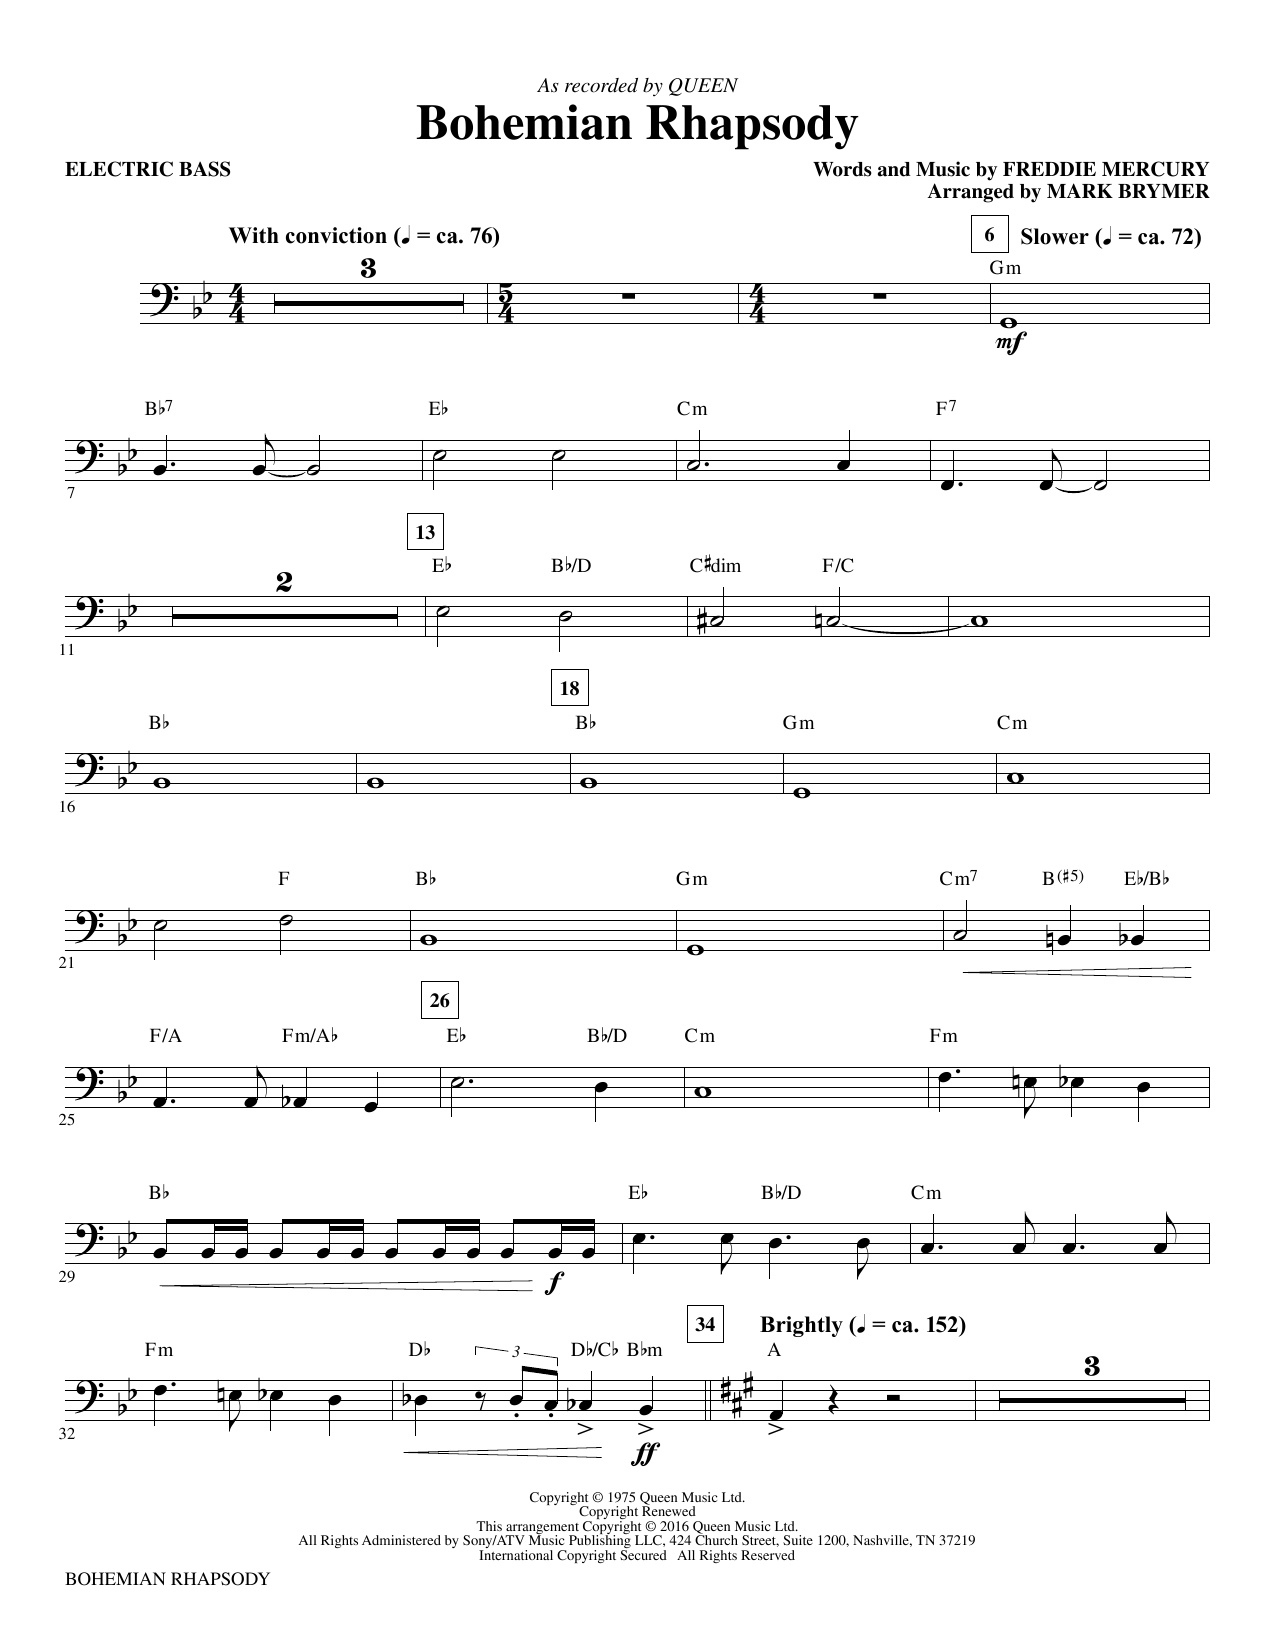 Queen Bohemian Rhapsody (arr. Mark Brymer) - Electric Bass sheet music notes and chords. Download Printable PDF.